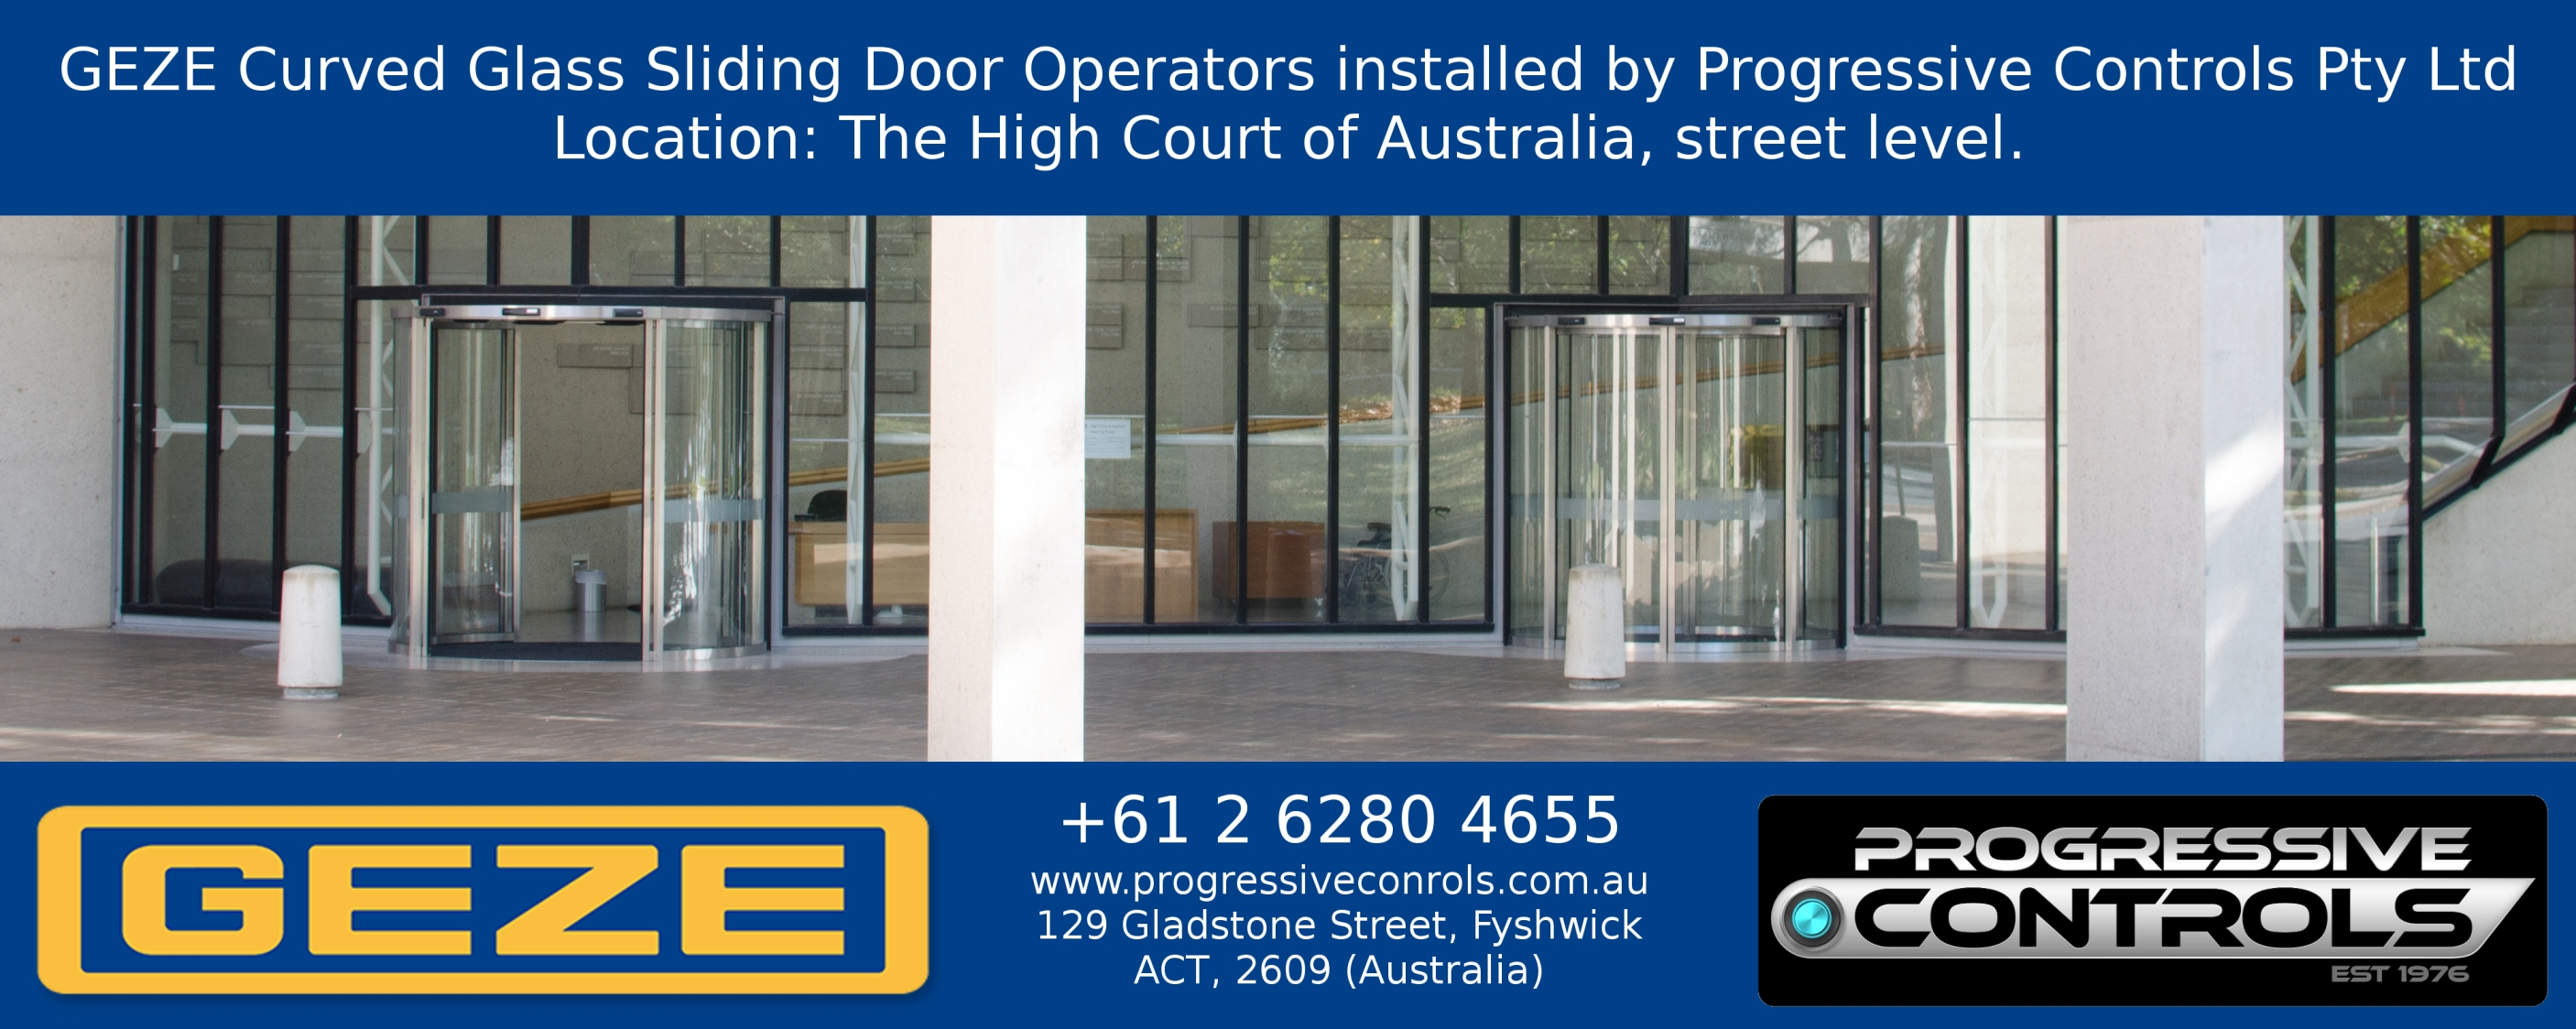 GEZE Curved Glass Sliding Door Operators installed at The High Court of Australia u2013 Canberra u2013 street-level_AUSTRALIA_LR  sc 1 st  Progressive Controls & GEZE Curved Glass Sliding Door Operators installed at The High ... pezcame.com